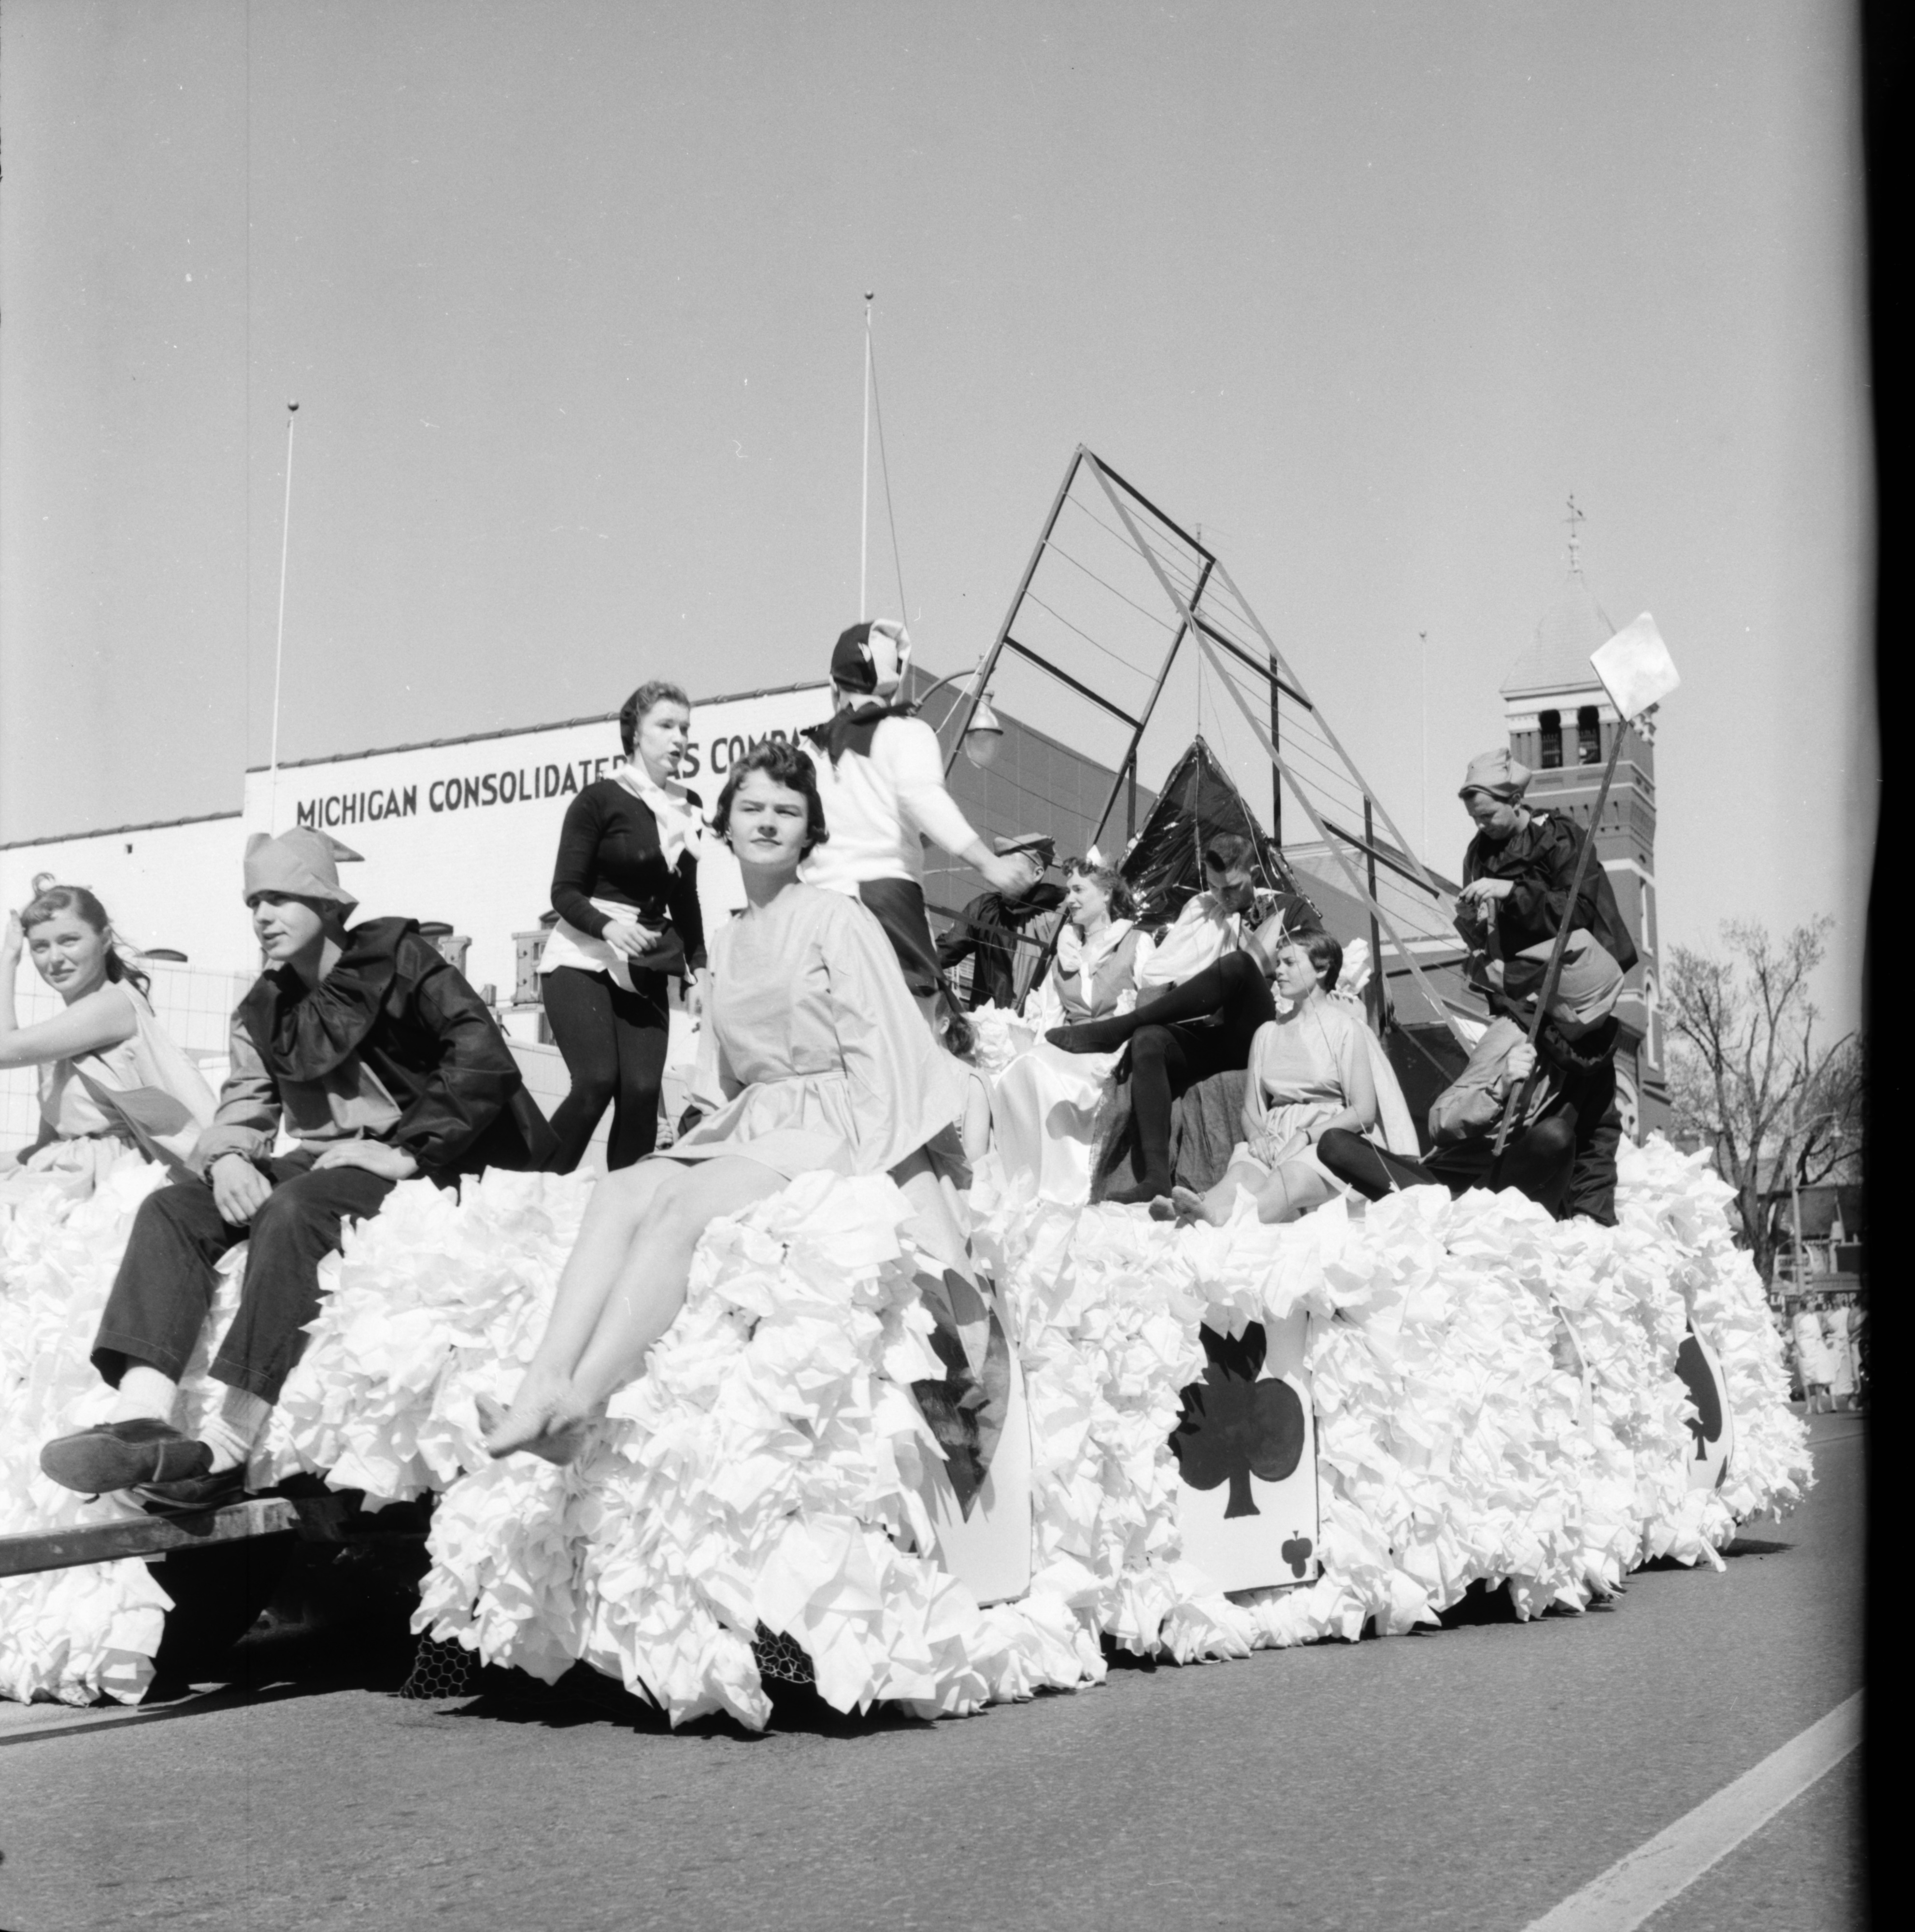 A Float in the Michigras Parade, April 1958 image